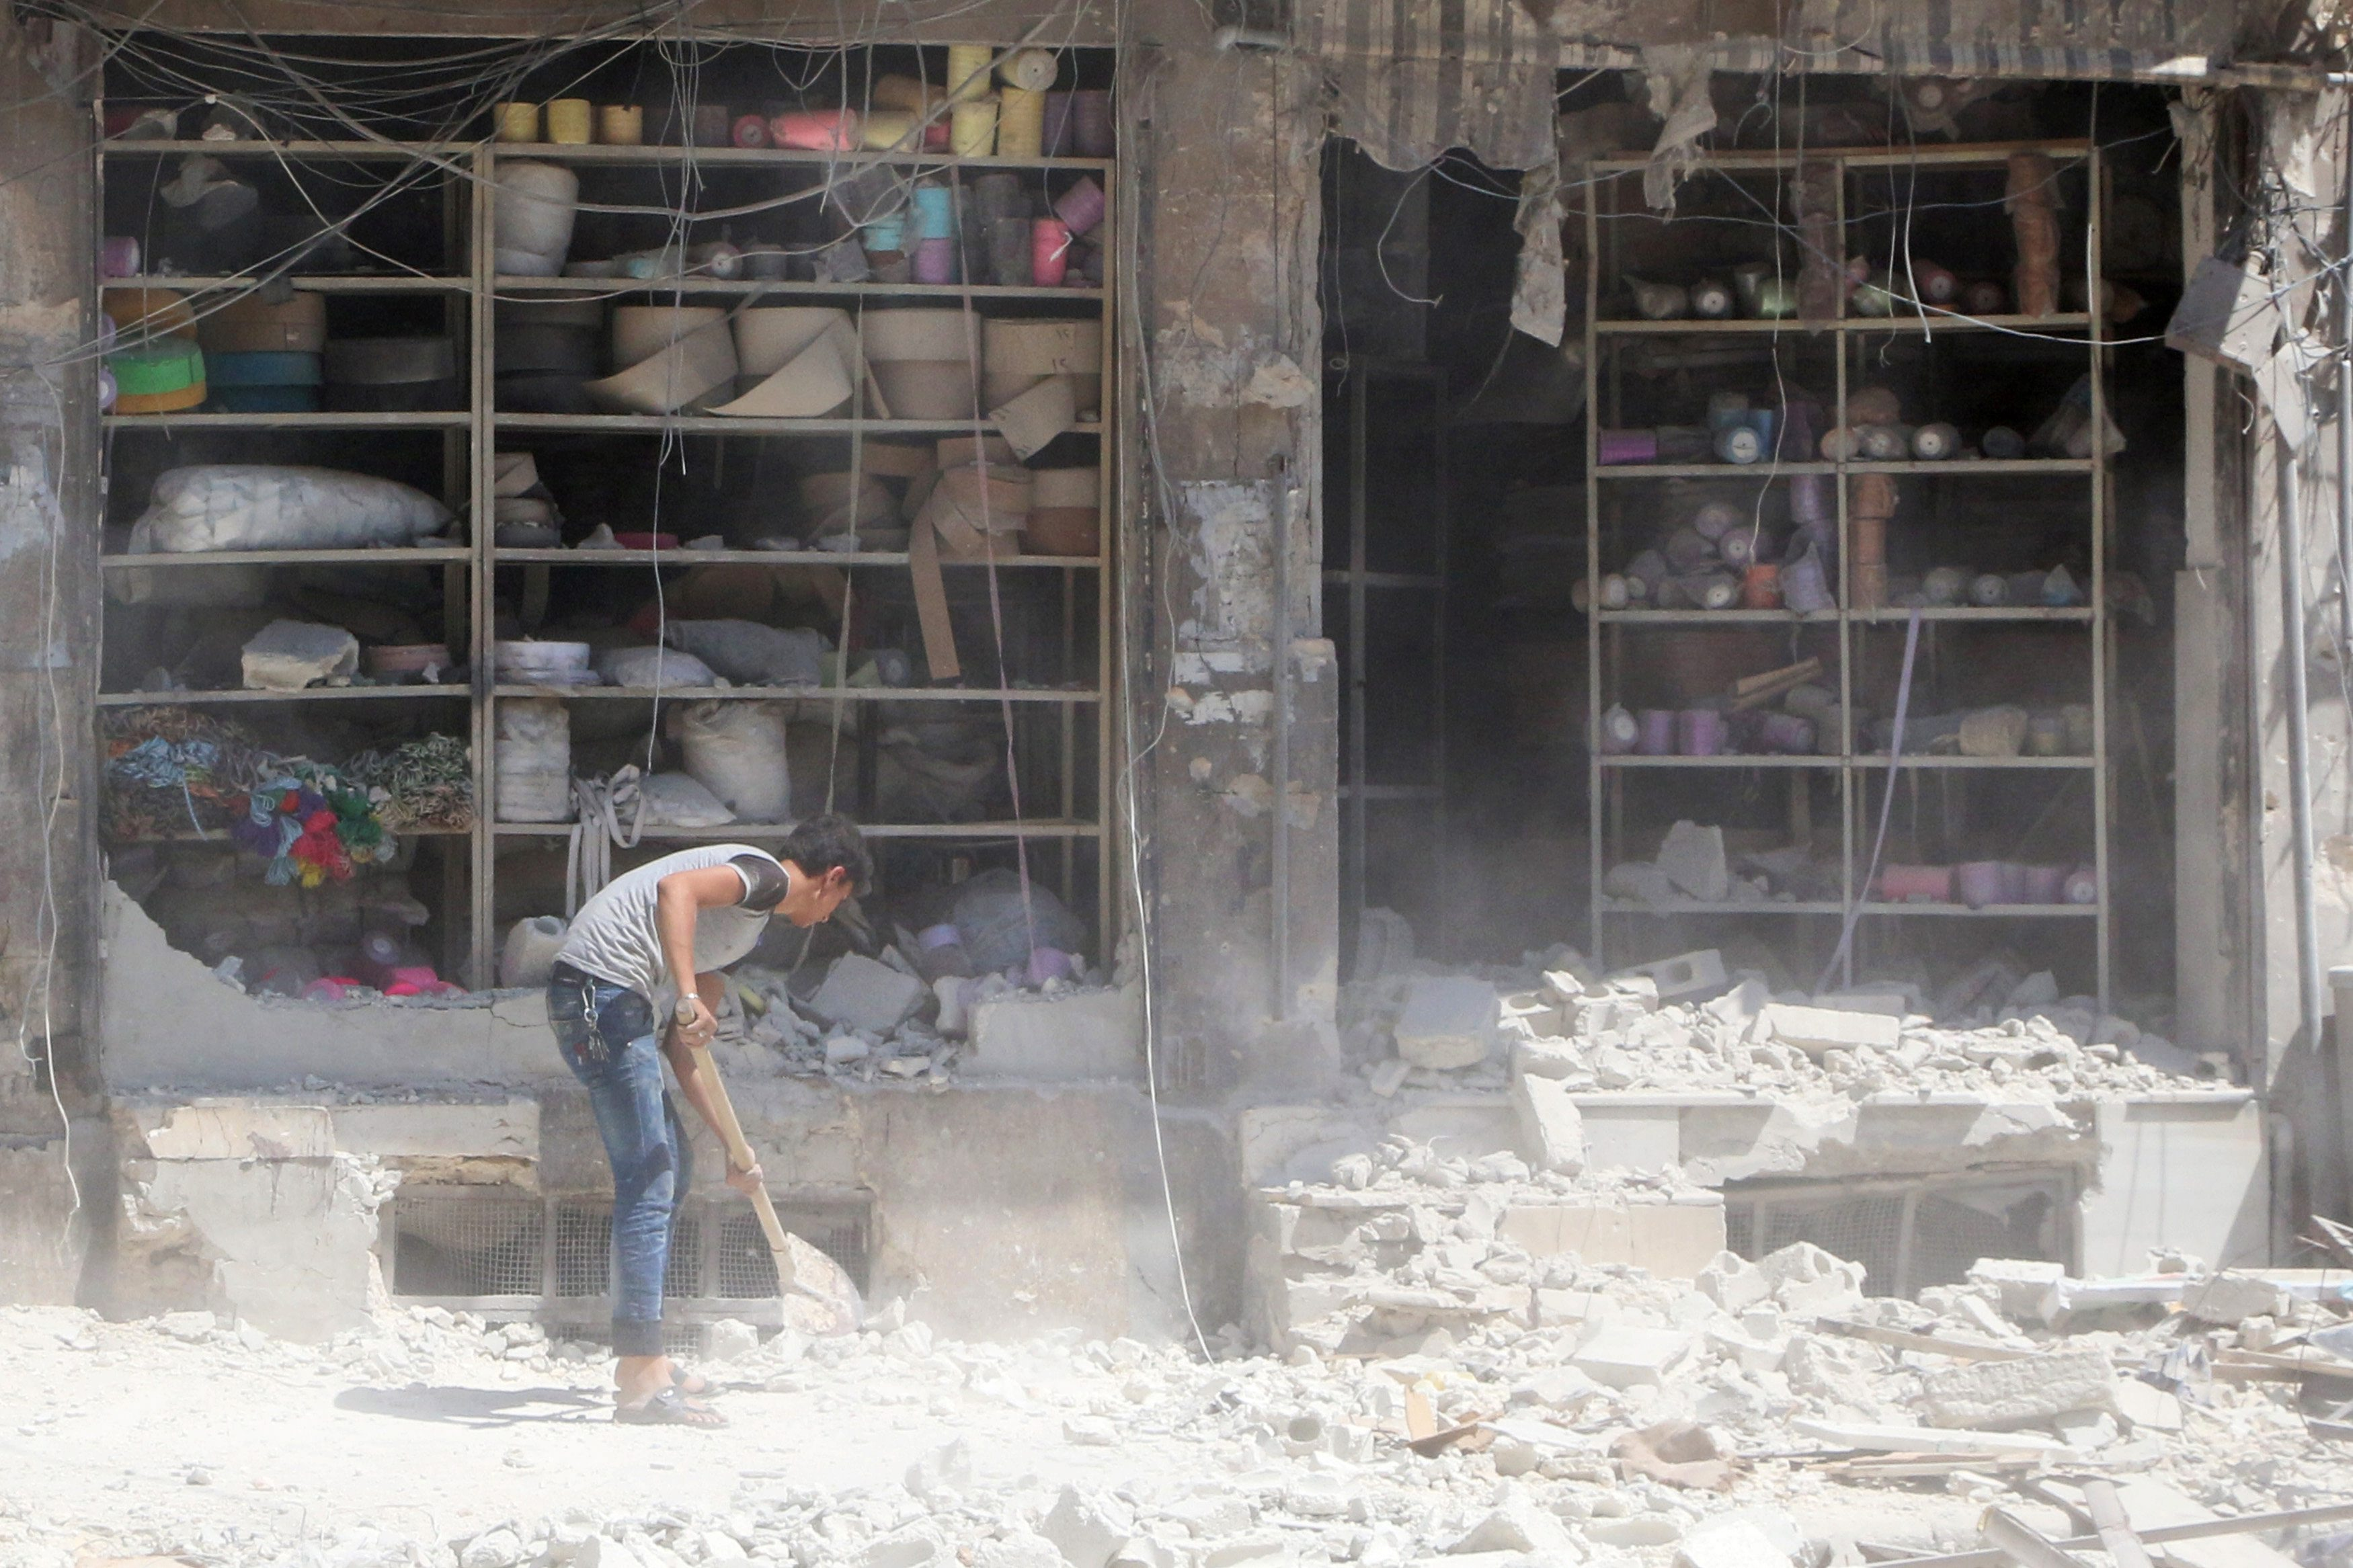 A civilian removes the rubble in front of a damaged shop after an airstrike in the rebel held al-Saleheen neighborhood of Aleppo, Syria August 18, 2016. REUTERS/Abdalrhman Ismail      TPX IMAGES OF THE DAY